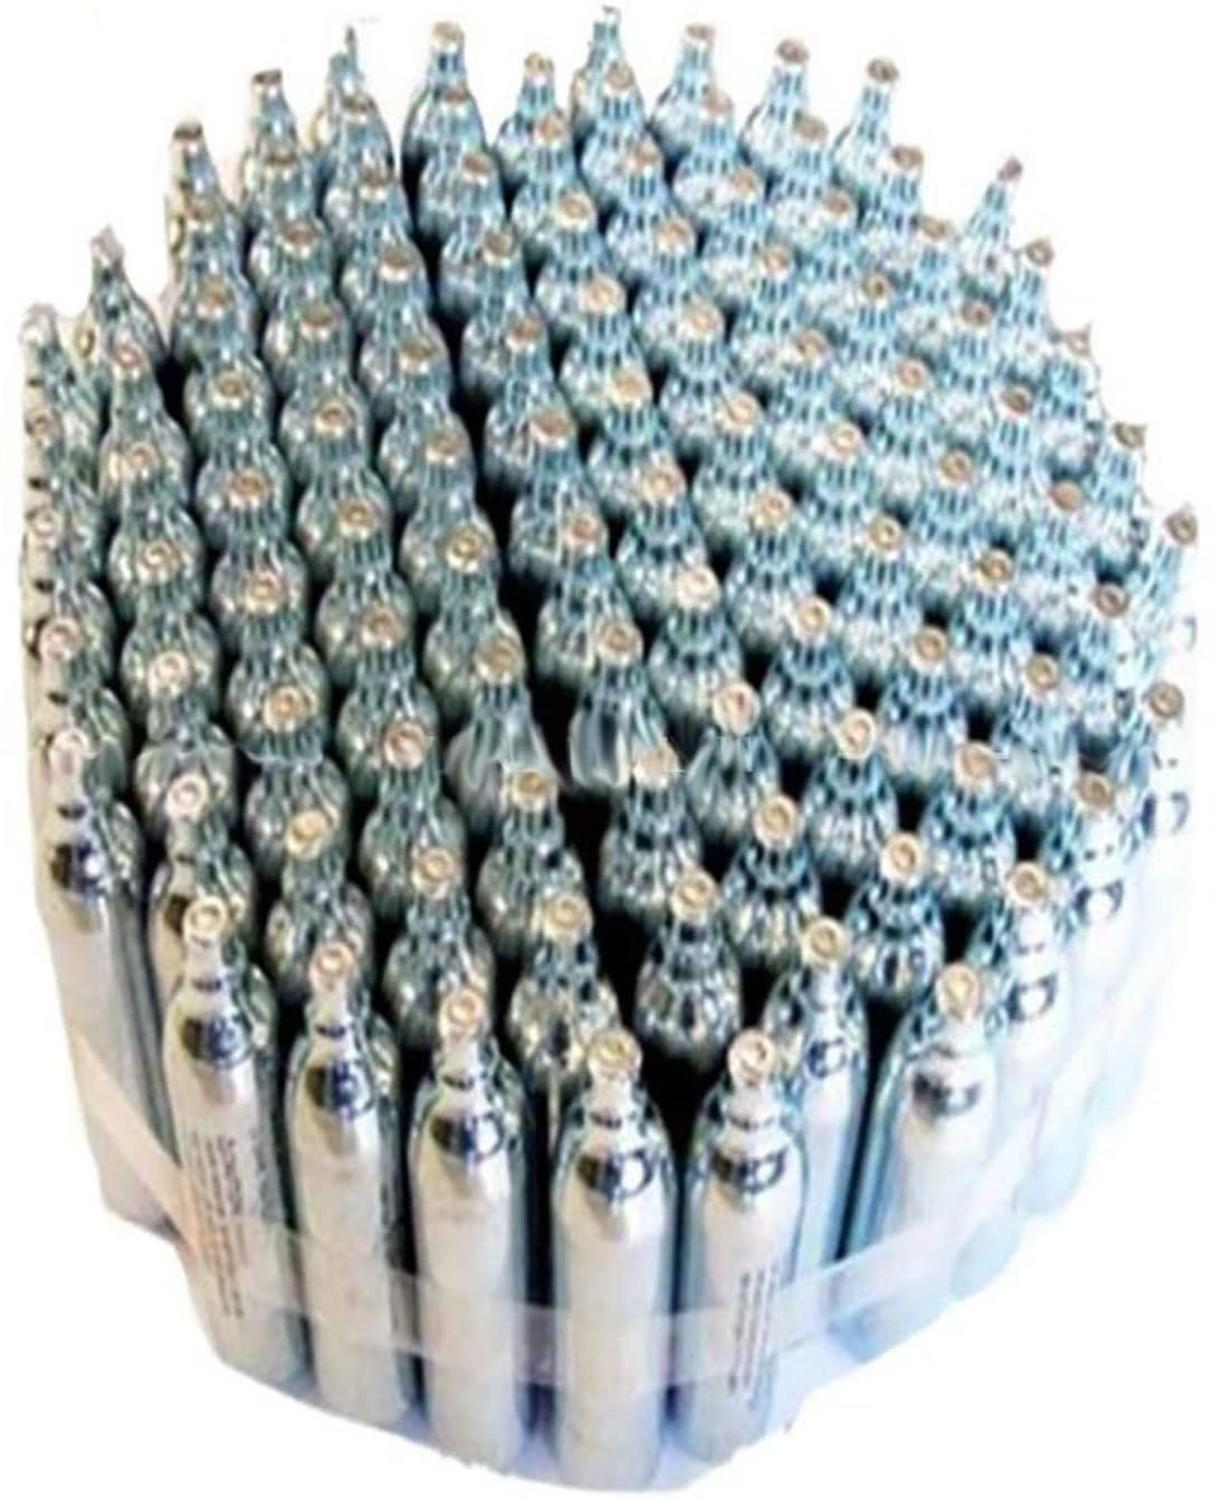 Free 48h 10 X CO2 High Performance   Capsules Bottles 12 Gr For Weapons Or Compressed Air Guns Airsoft